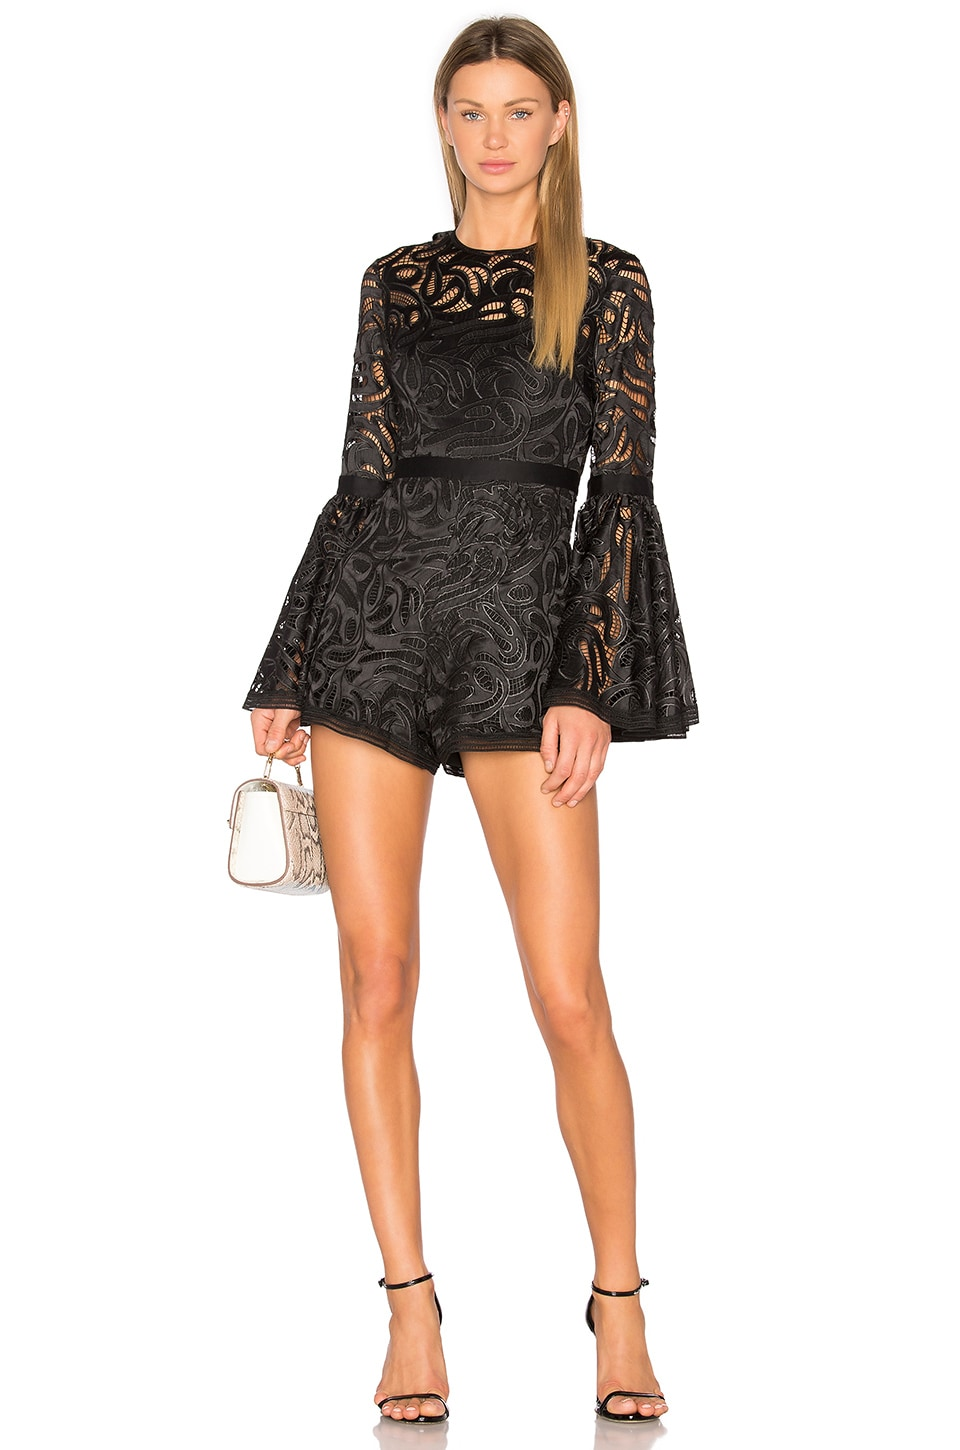 Alexis Rihanne Romper in Black Lace